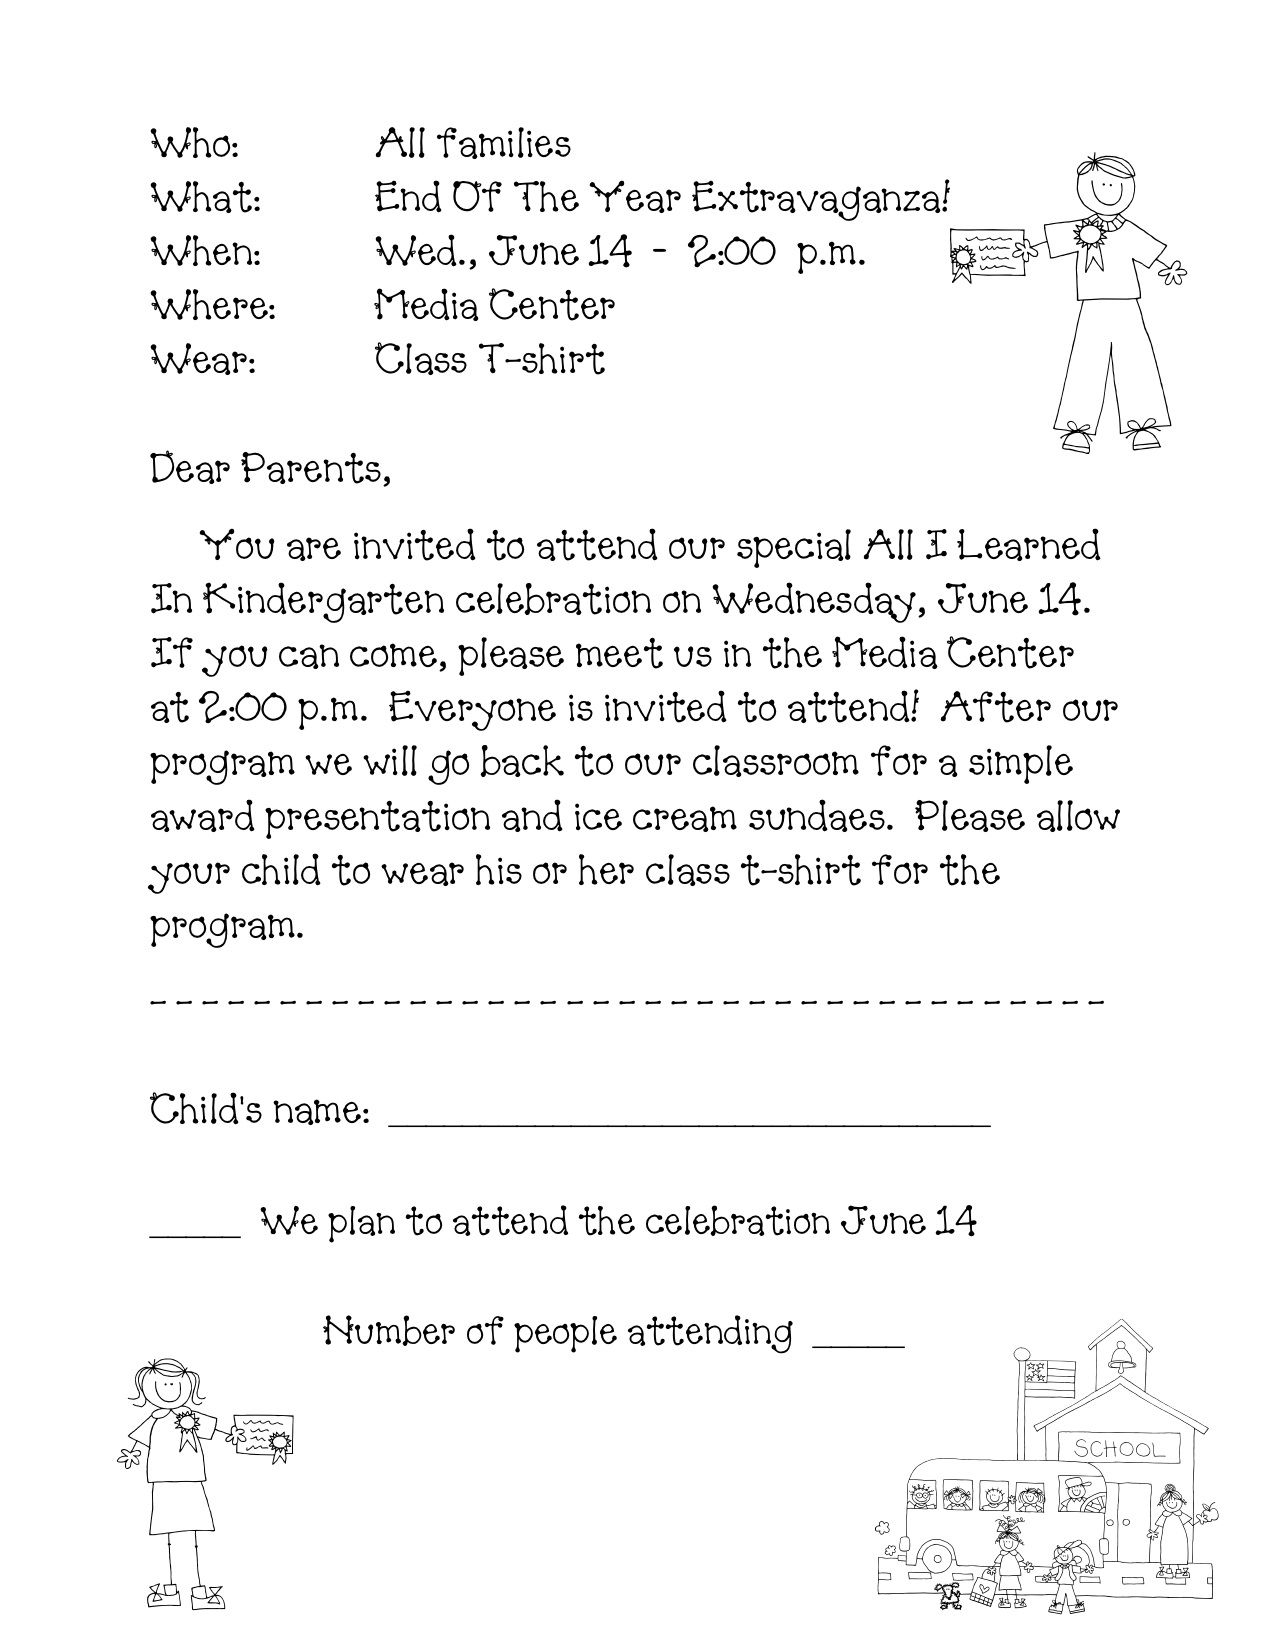 Kindergarten Welcome Letter Template - Preschool Graduation Program Sample Google Search